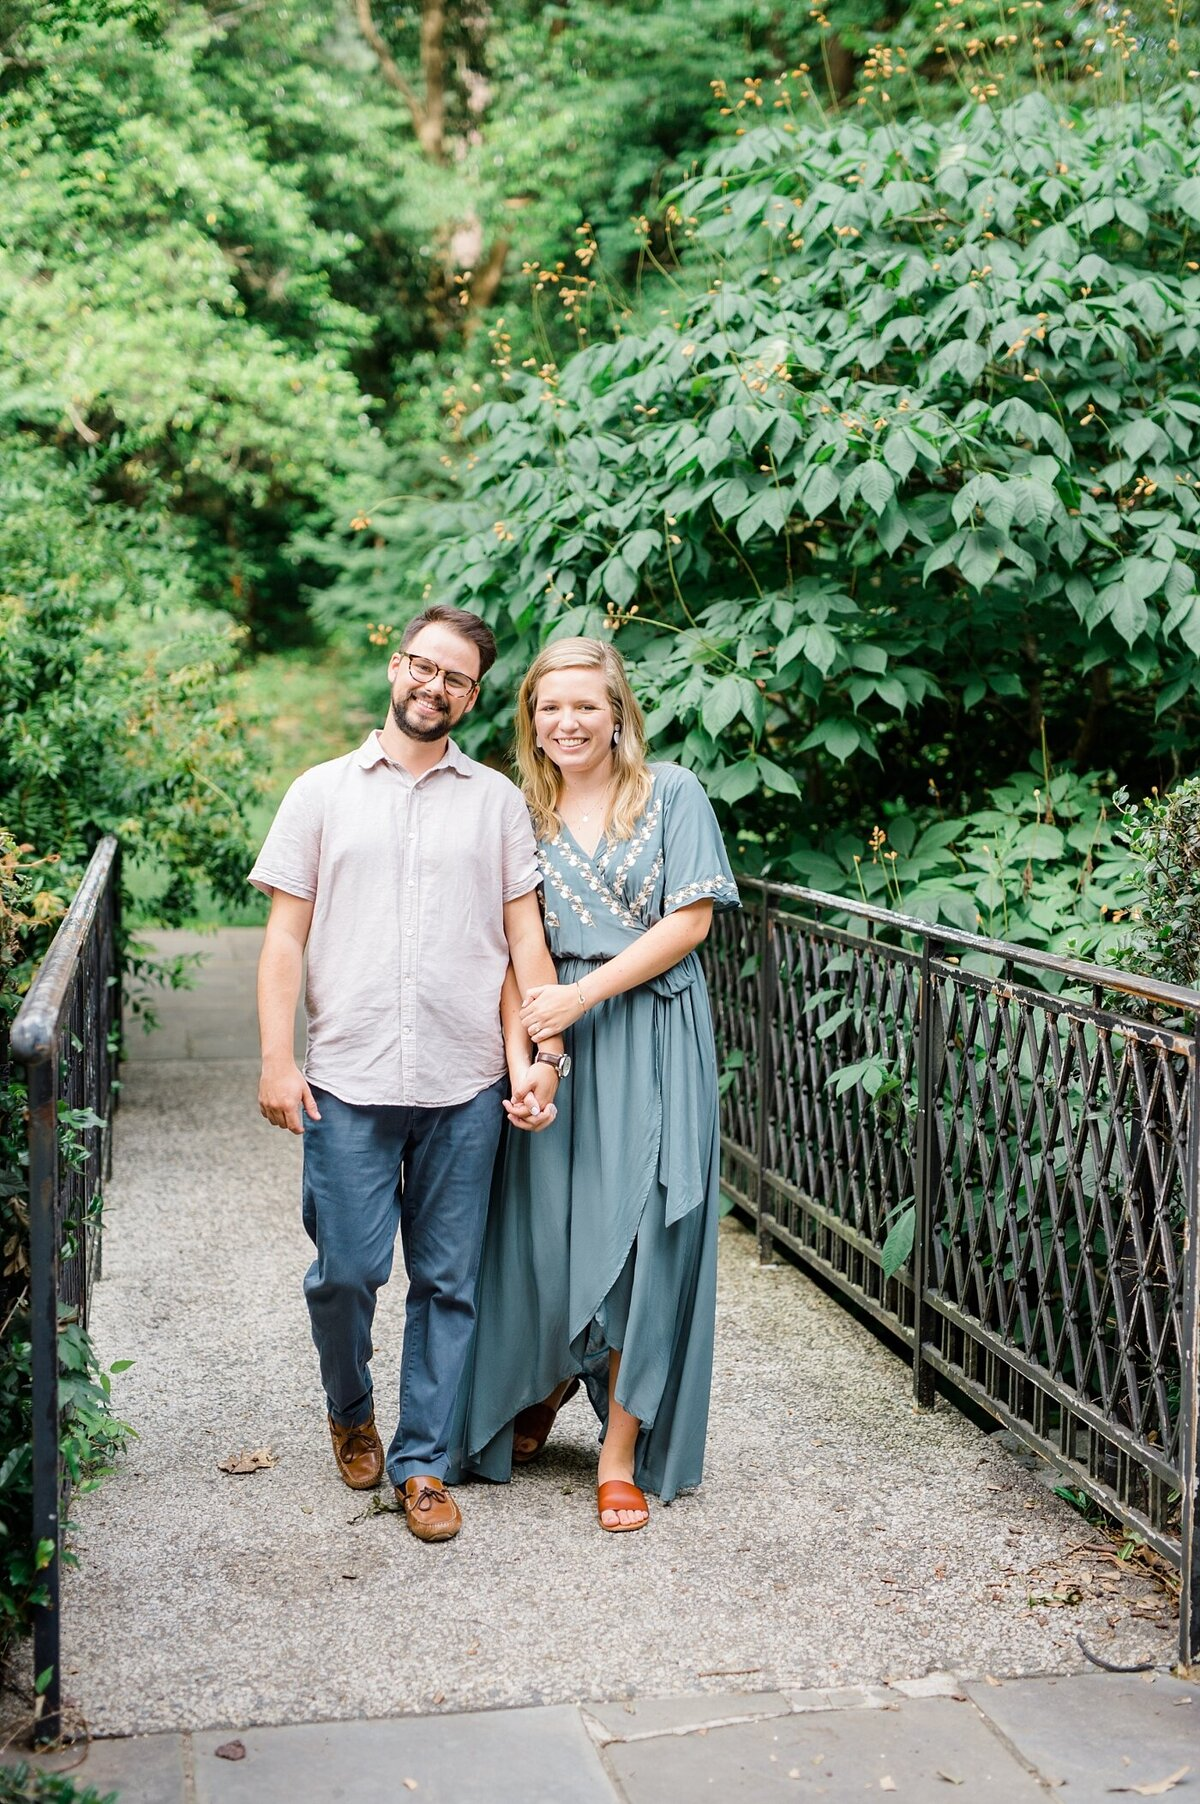 cator-woolford-gardens-engagement-wedding-photographer-laura-barnes-photo-shackelford-30